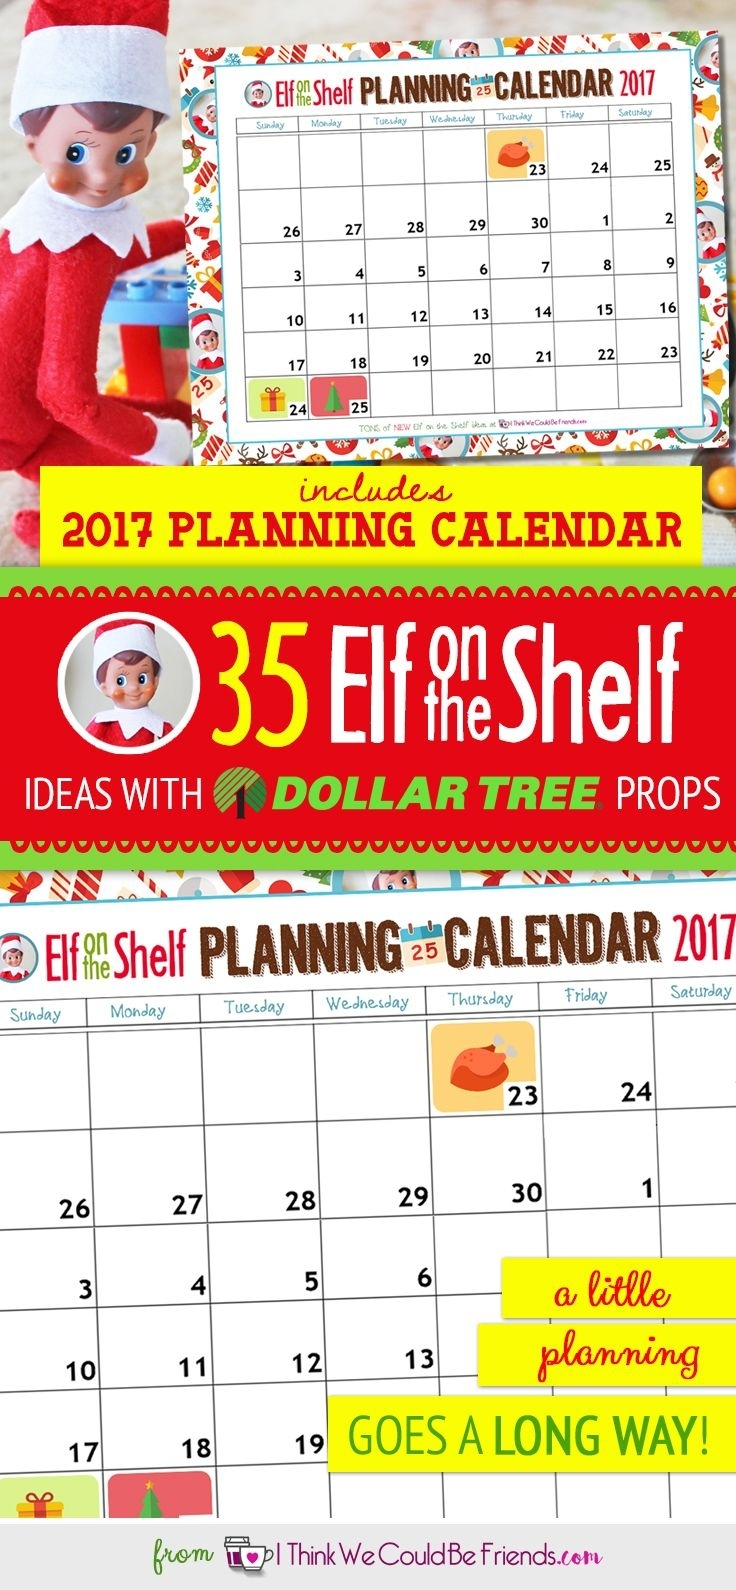 Free Printable Elf On The Shelf Planning Calendar For 2018! | Elf On with Free Printable Adult Superhero Calendars